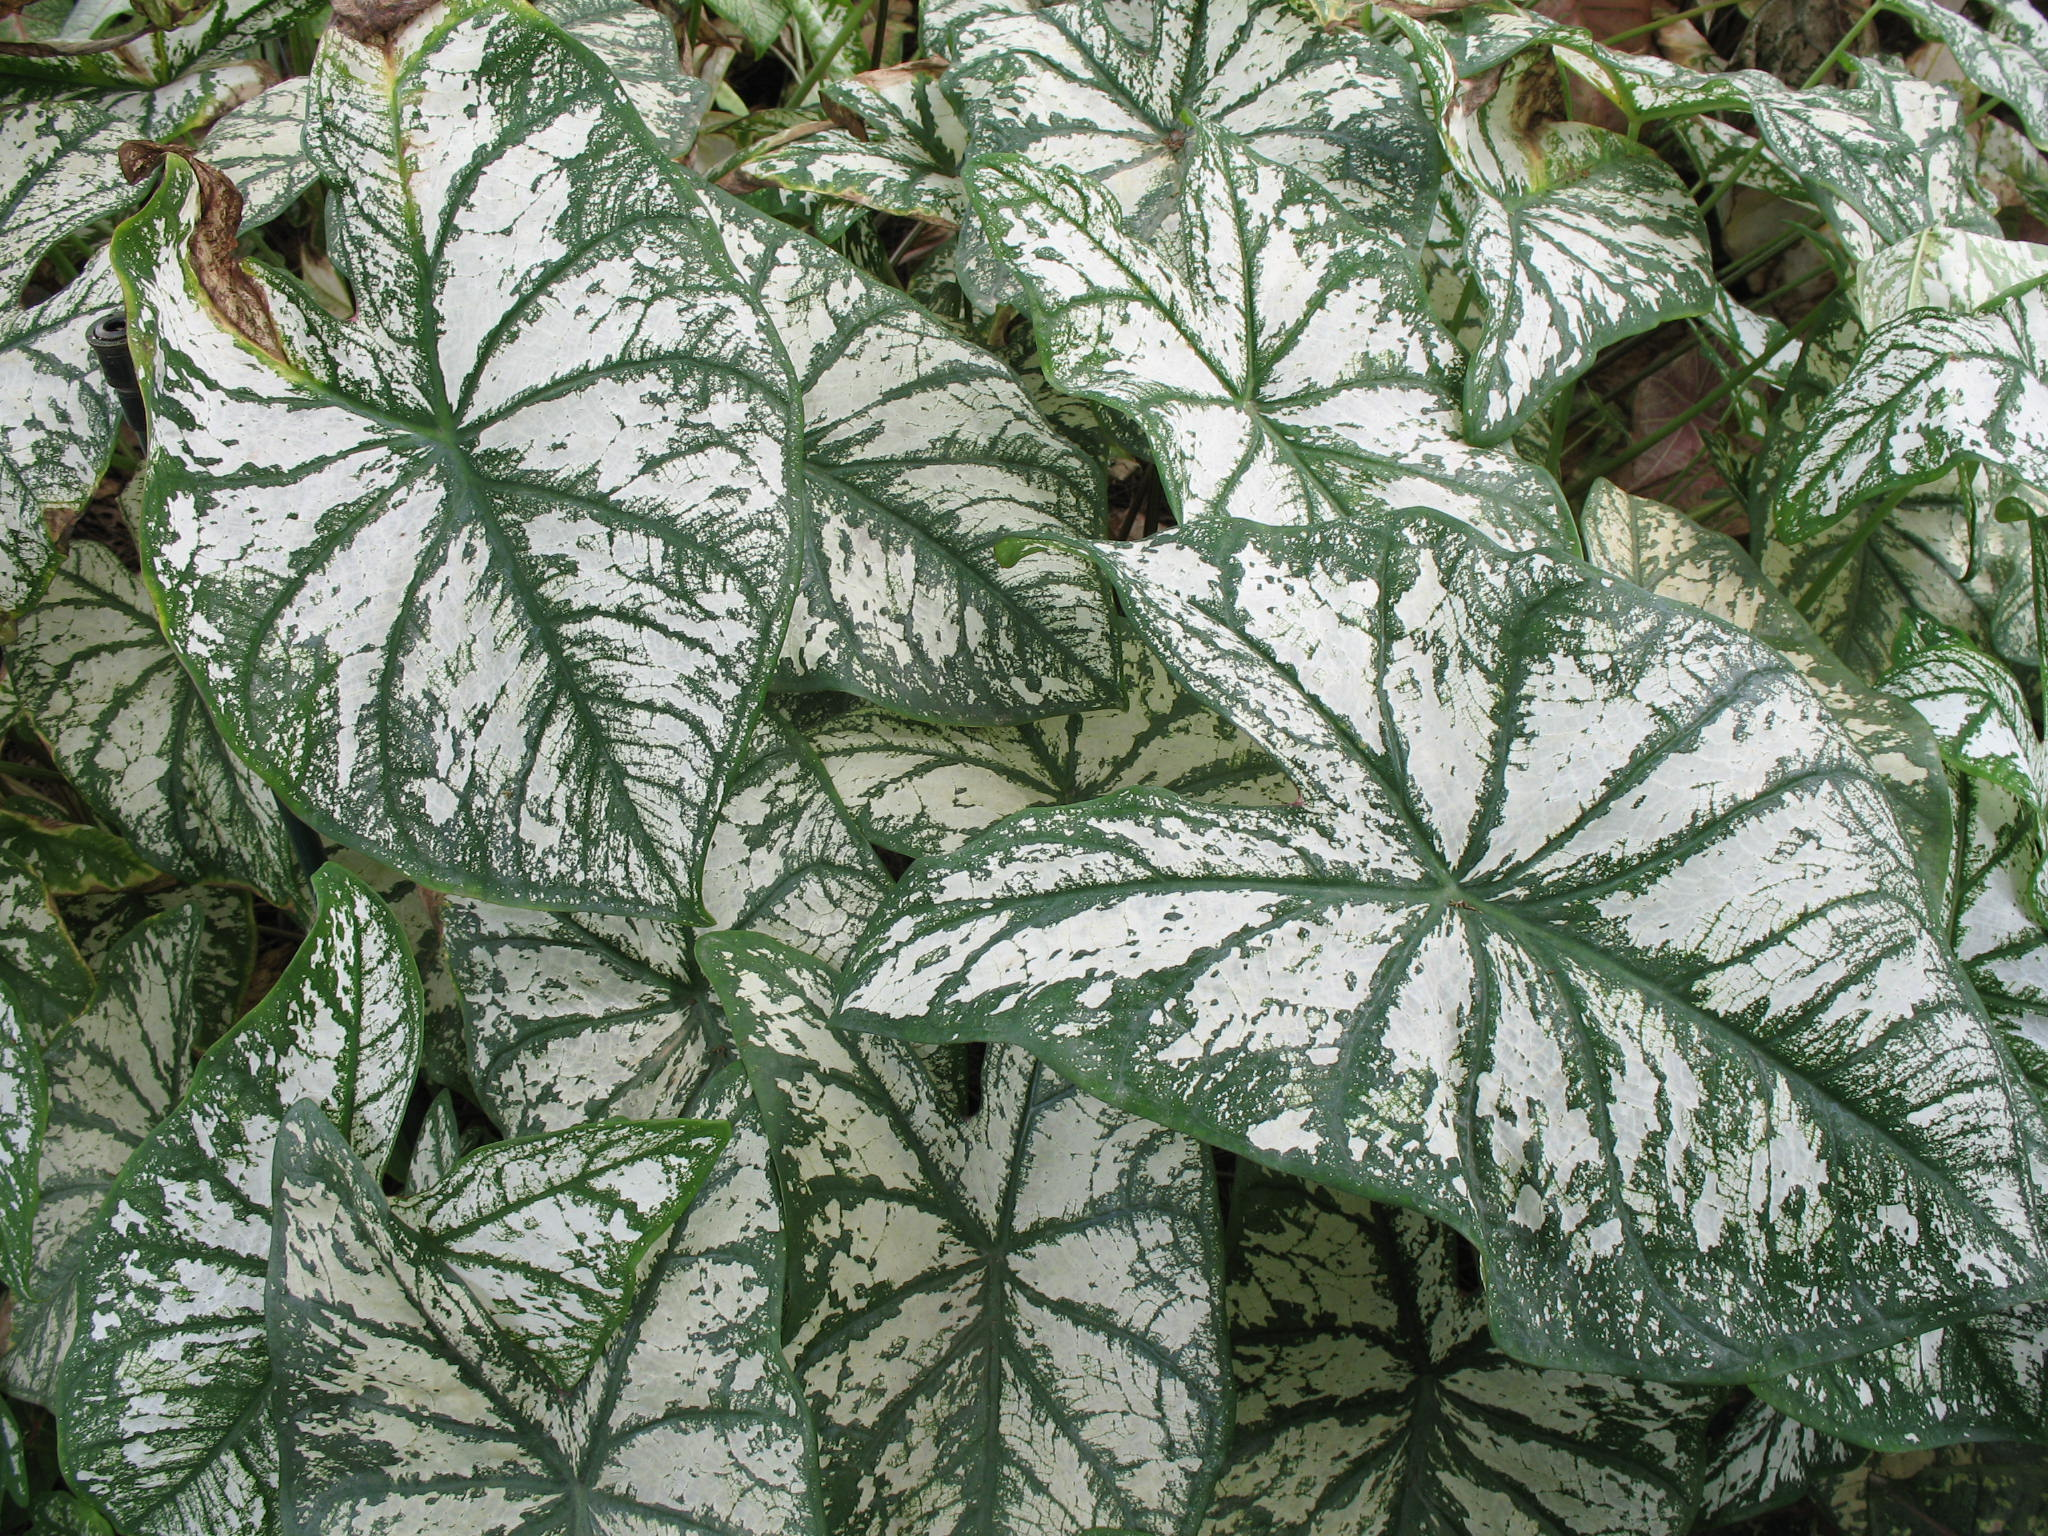 Caladium bicolor 'White Christmas'   / Caladium bicolor 'White Christmas'